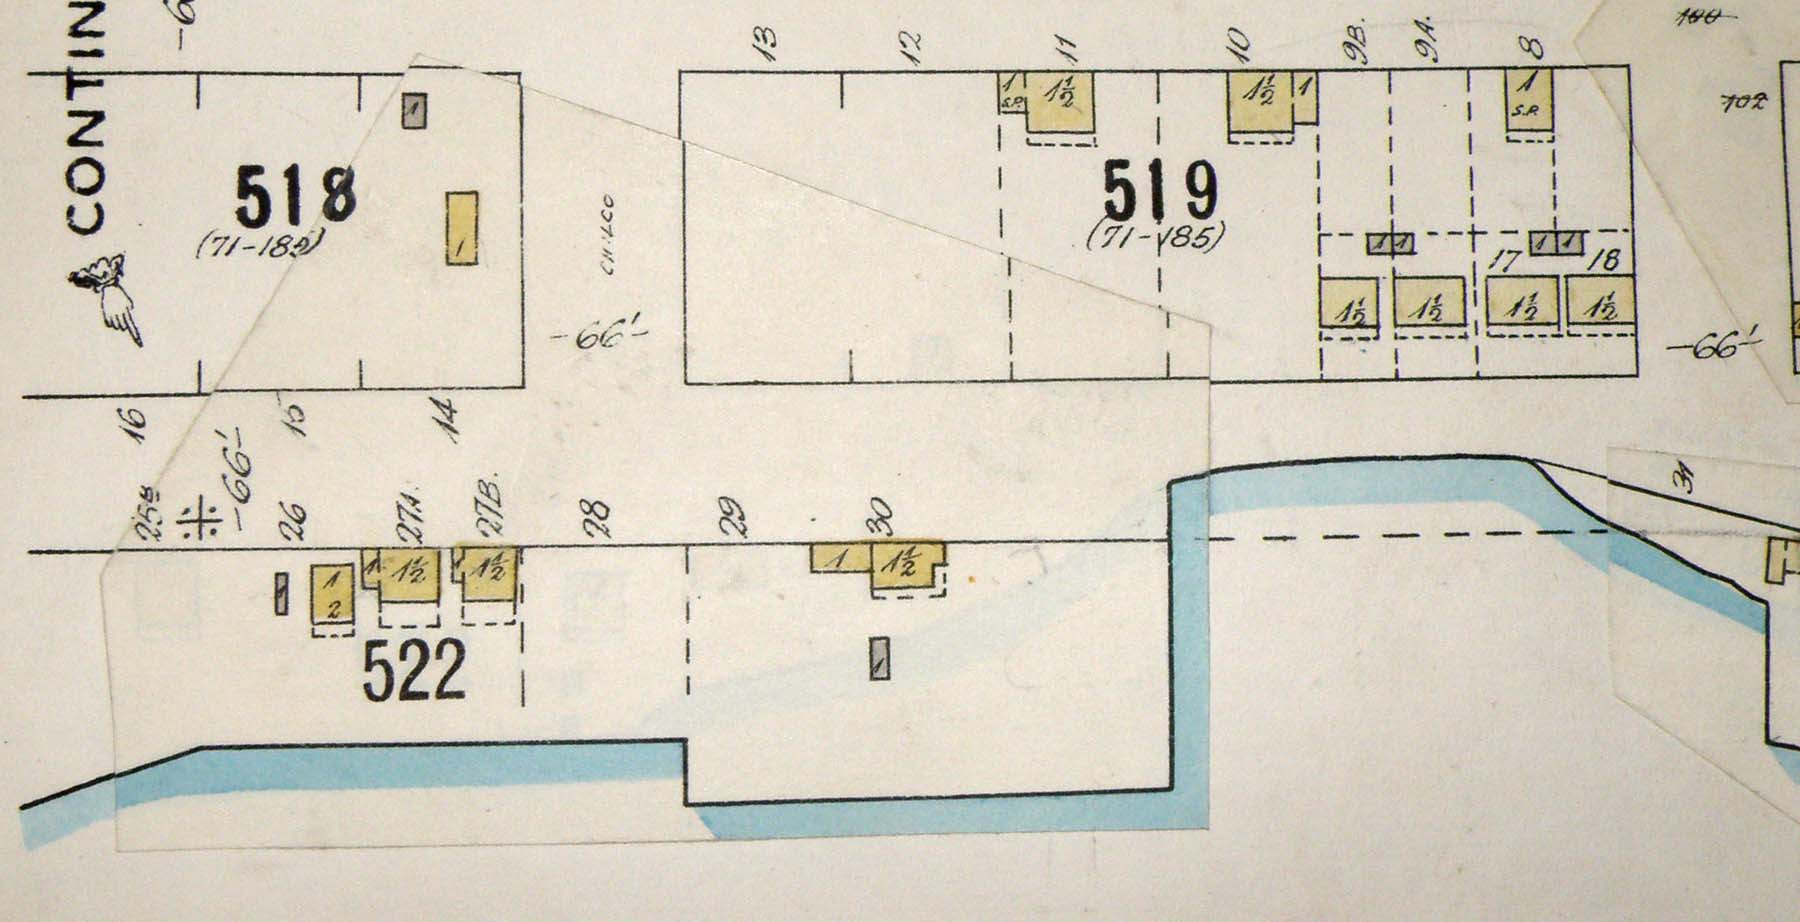 Detail from Map 384, showing buildings in the same two blocks as in the photograph.